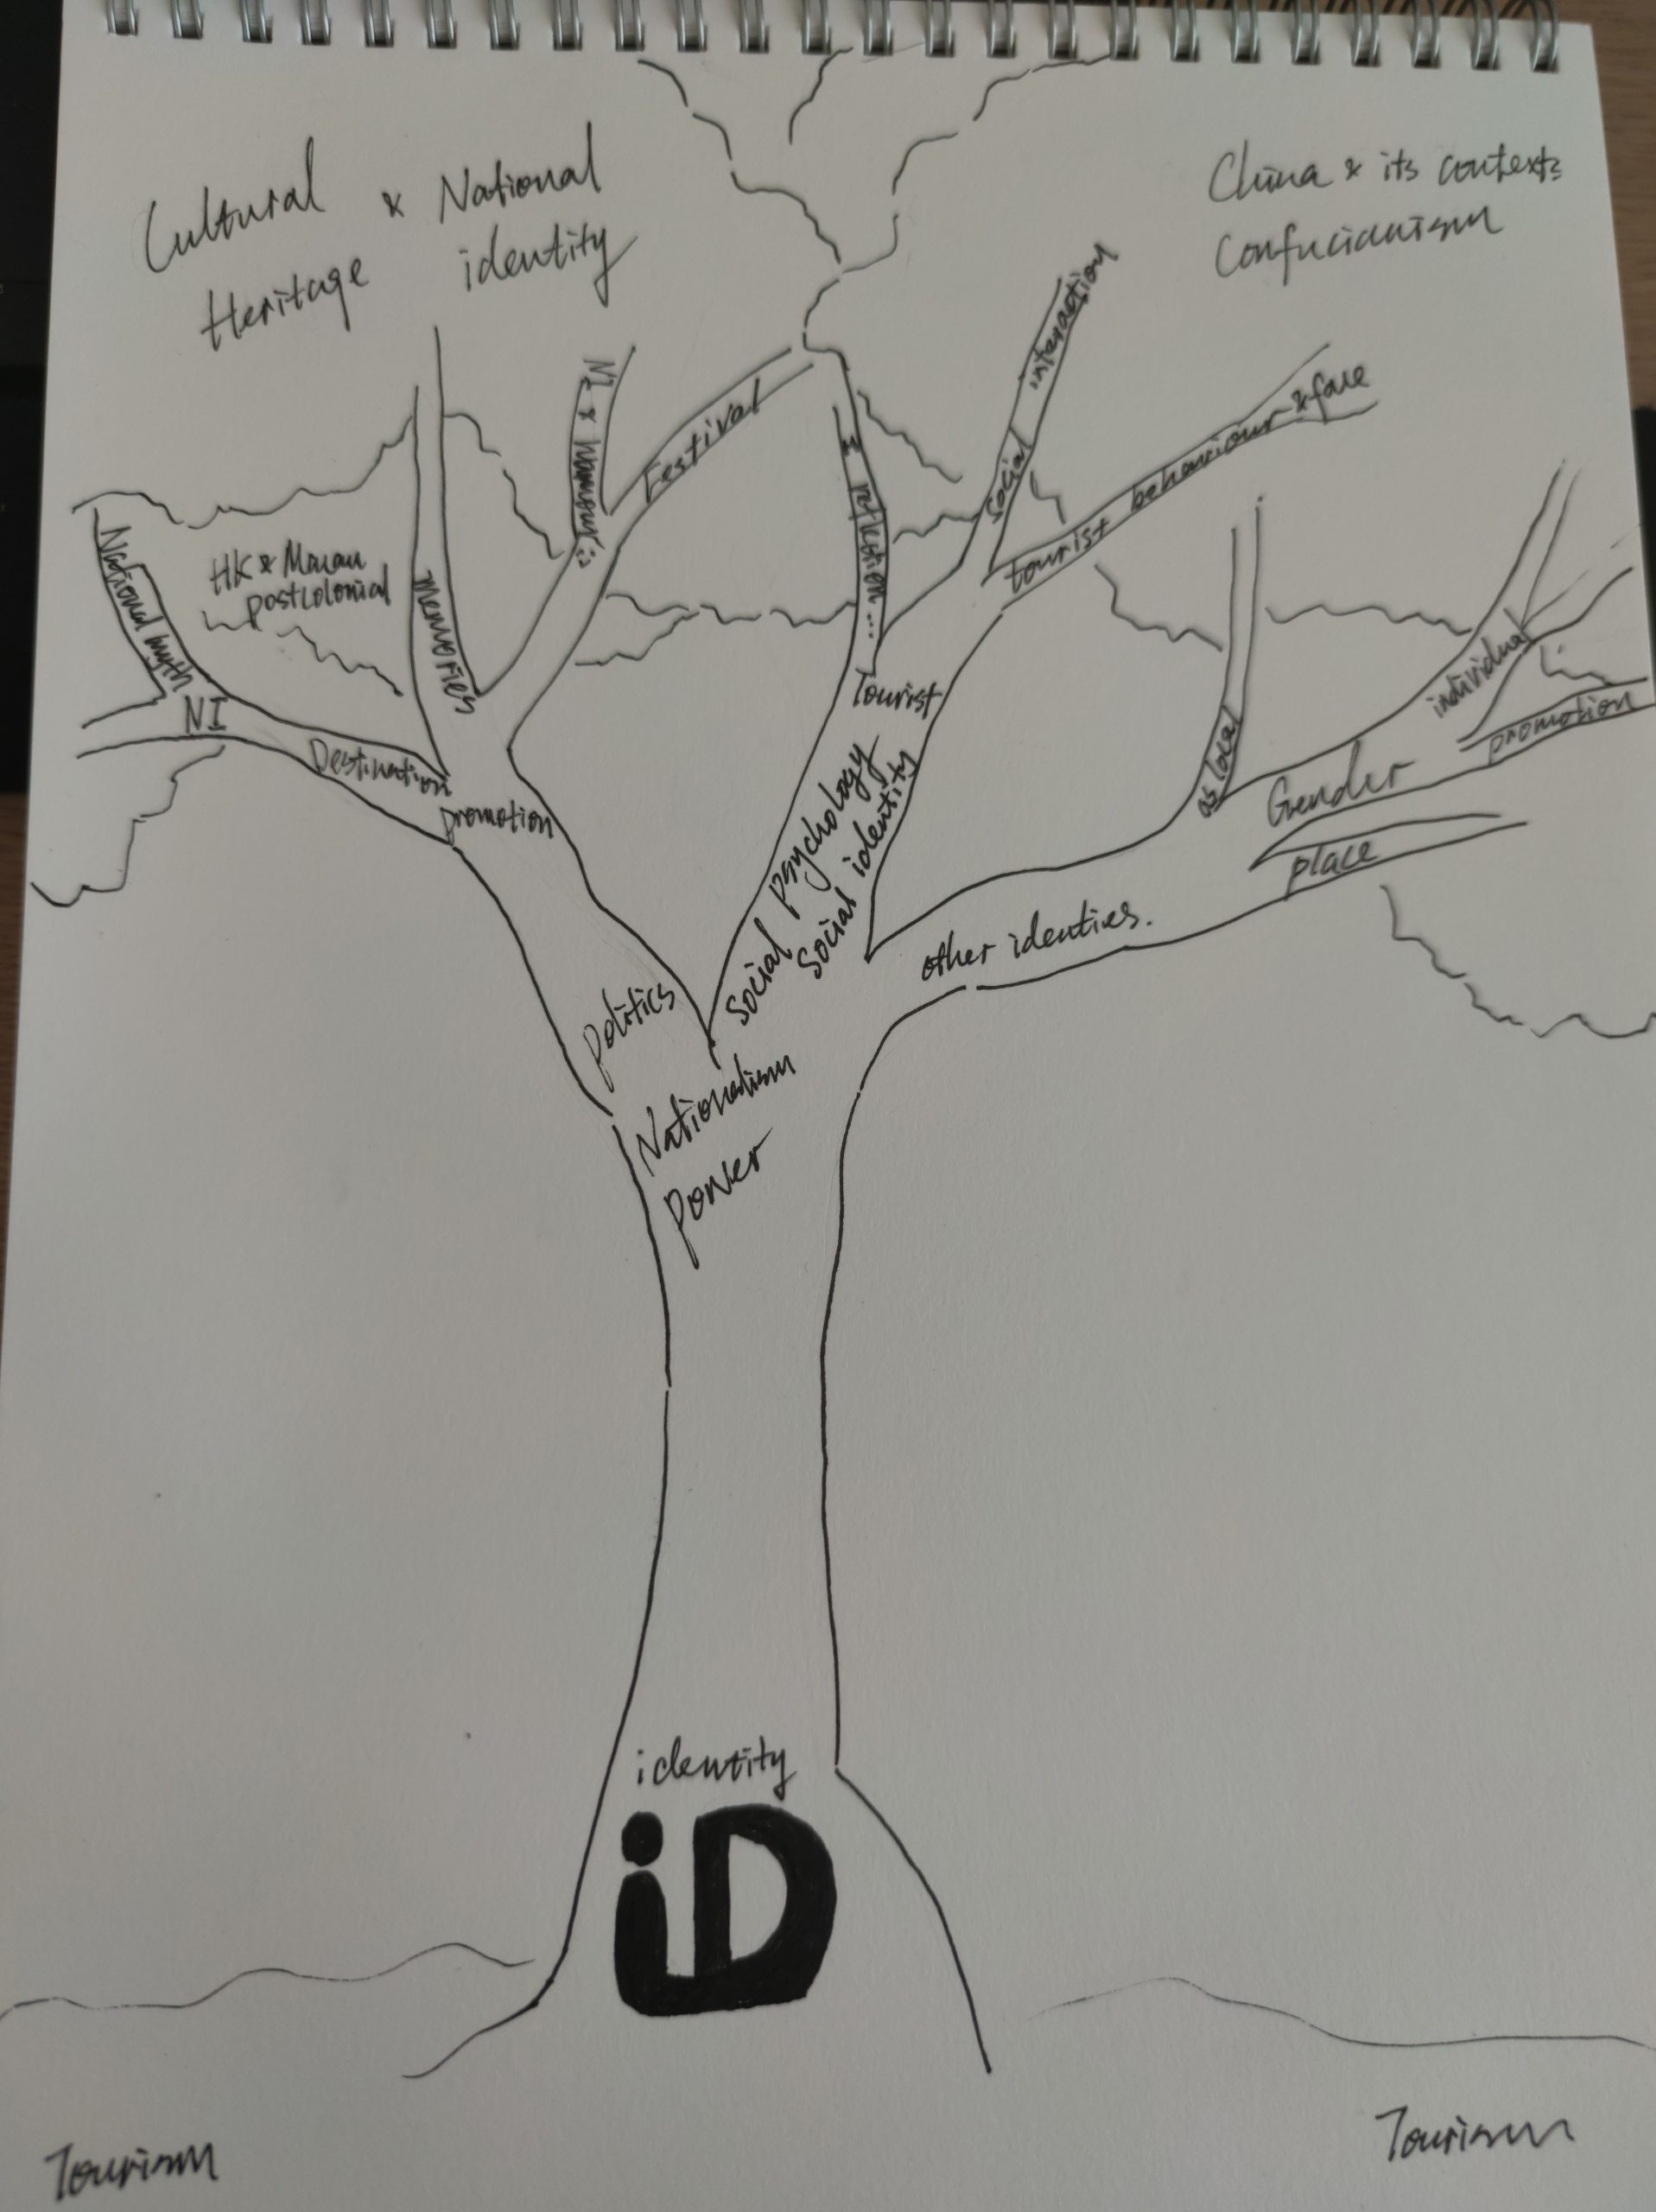 To help myself reflect on who I am as a researcher, I have drawn a reflexive contribution tree that identifies my key research contributions in which my theoretical assumptions and values are embedded. As shown in the image, identity theory is fundamental for my contribution tree, which continuously nurtures my research. Specifically, I have primarily focused on understanding national identity and social identity in the context of international tourism.